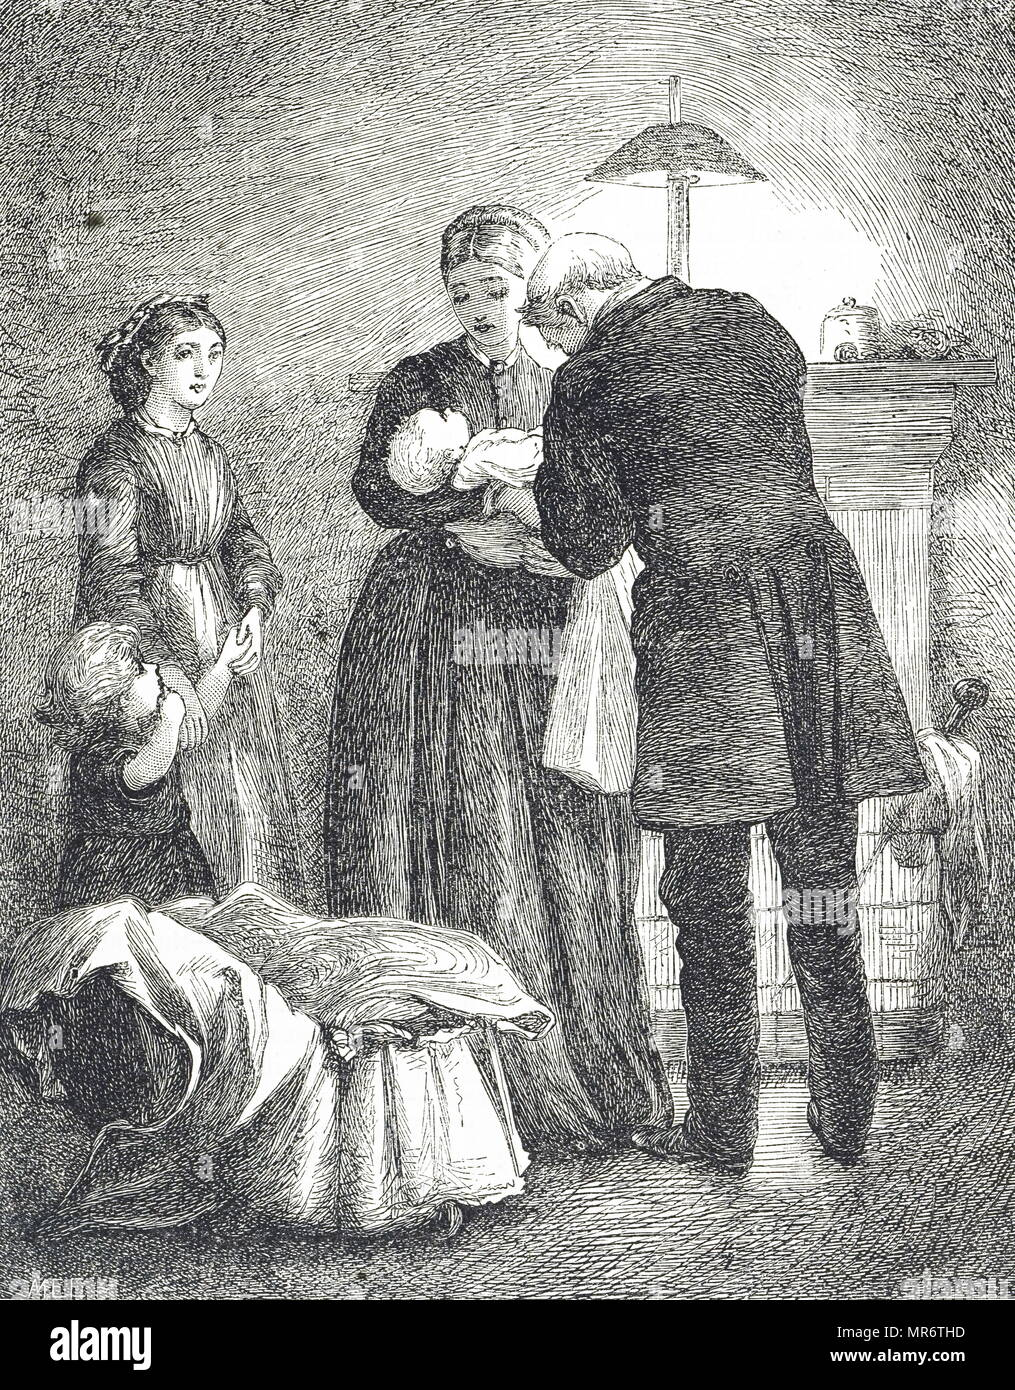 Engraving depicting a doctor examining a baby with measles. An attack by the measles virus makes a patient vulnerable to secondary infections, and death from complications such as pneumonia made measles a dangerous childhood illness. In modern times the use of antibiotics although ineffective against the initial viral infection, reduces the dangers from the Secondary infections. Illustrated Mary Ellen Edwards (1838-1934) an England artist and prolific illustrator of children's books. Dated 19th century - Stock Image